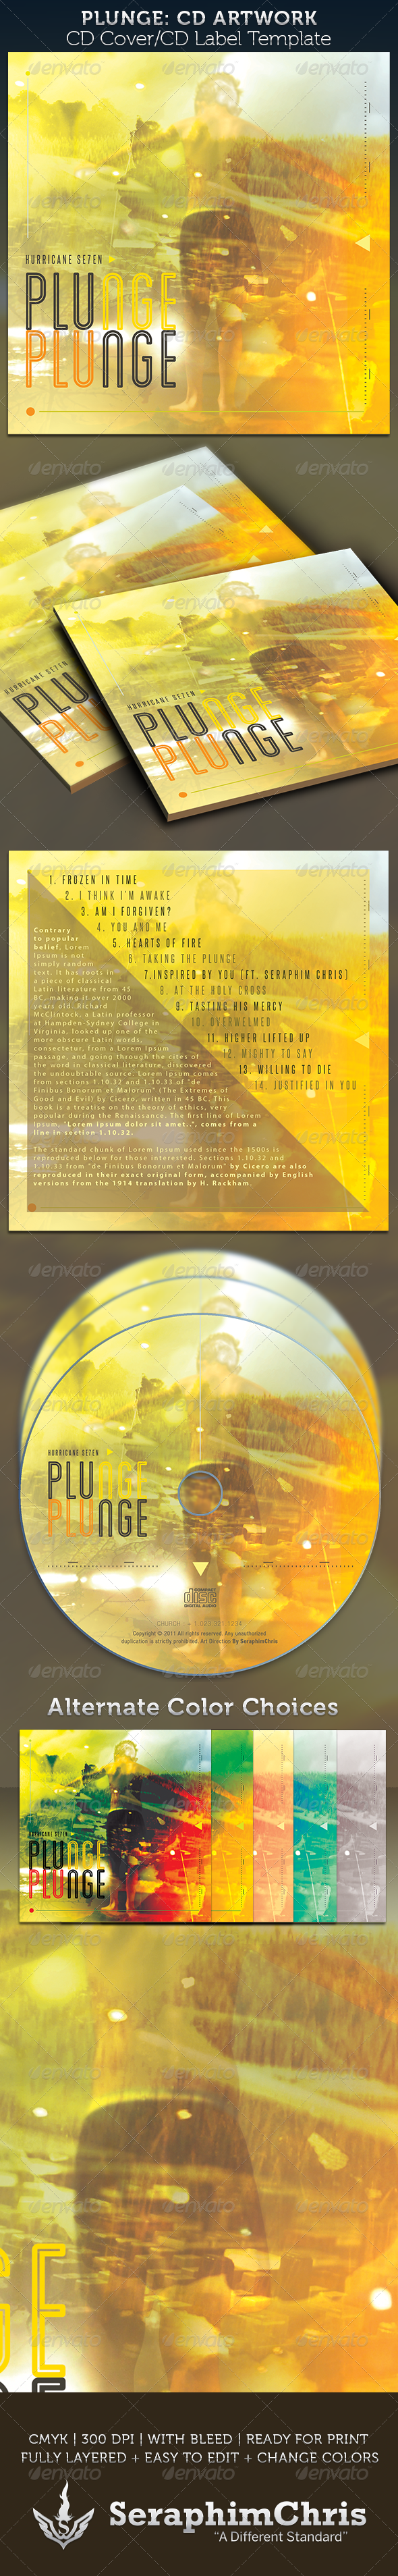 Plunge CD Cover Artwork Template - CD & DVD Artwork Print Templates